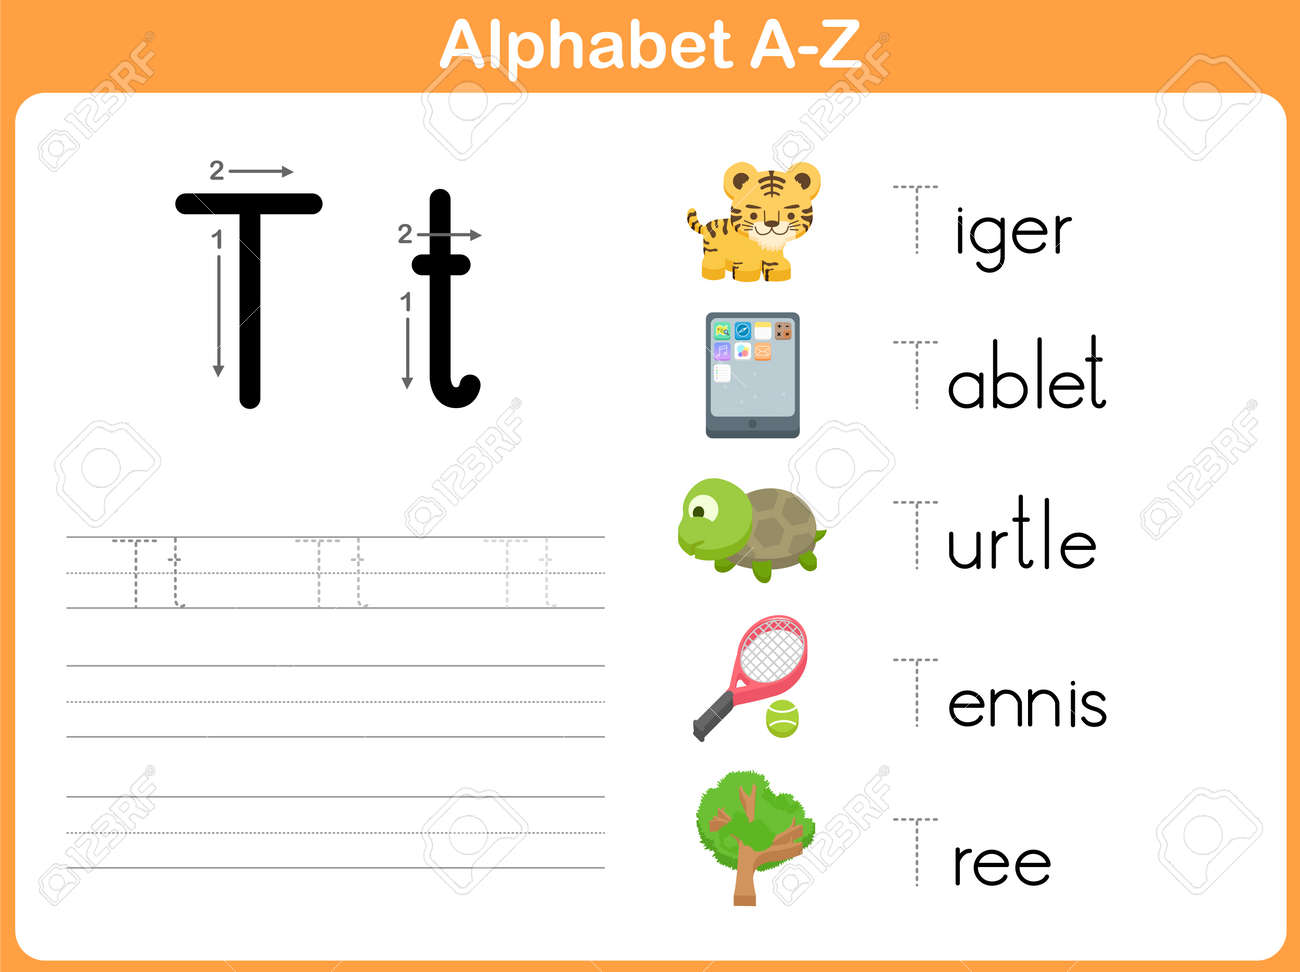 Printable Alphabet Tracing Worksheets A Z – Printable Editable  worksheets for teachers, printable worksheets, multiplication, free worksheets, and math worksheets Tracing Letters A Z Worksheet 972 x 1300